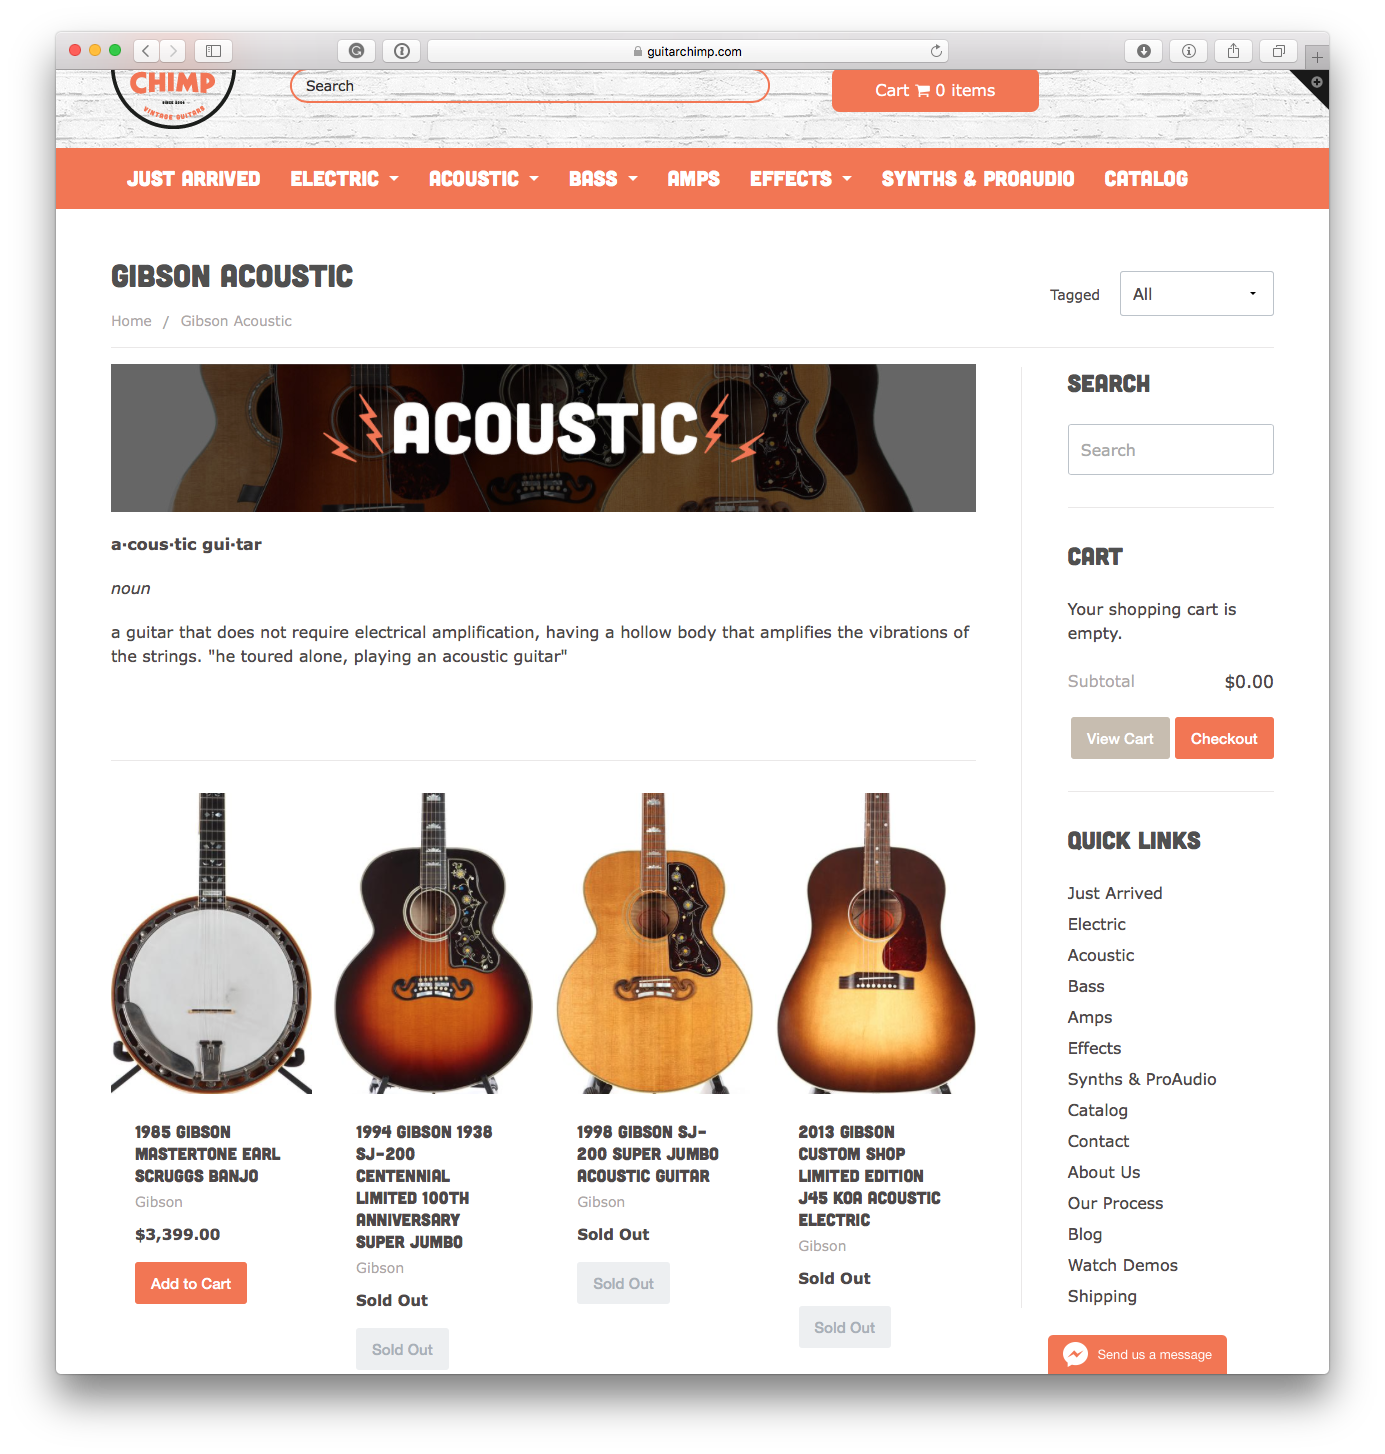 Guitar Chimp Category Page